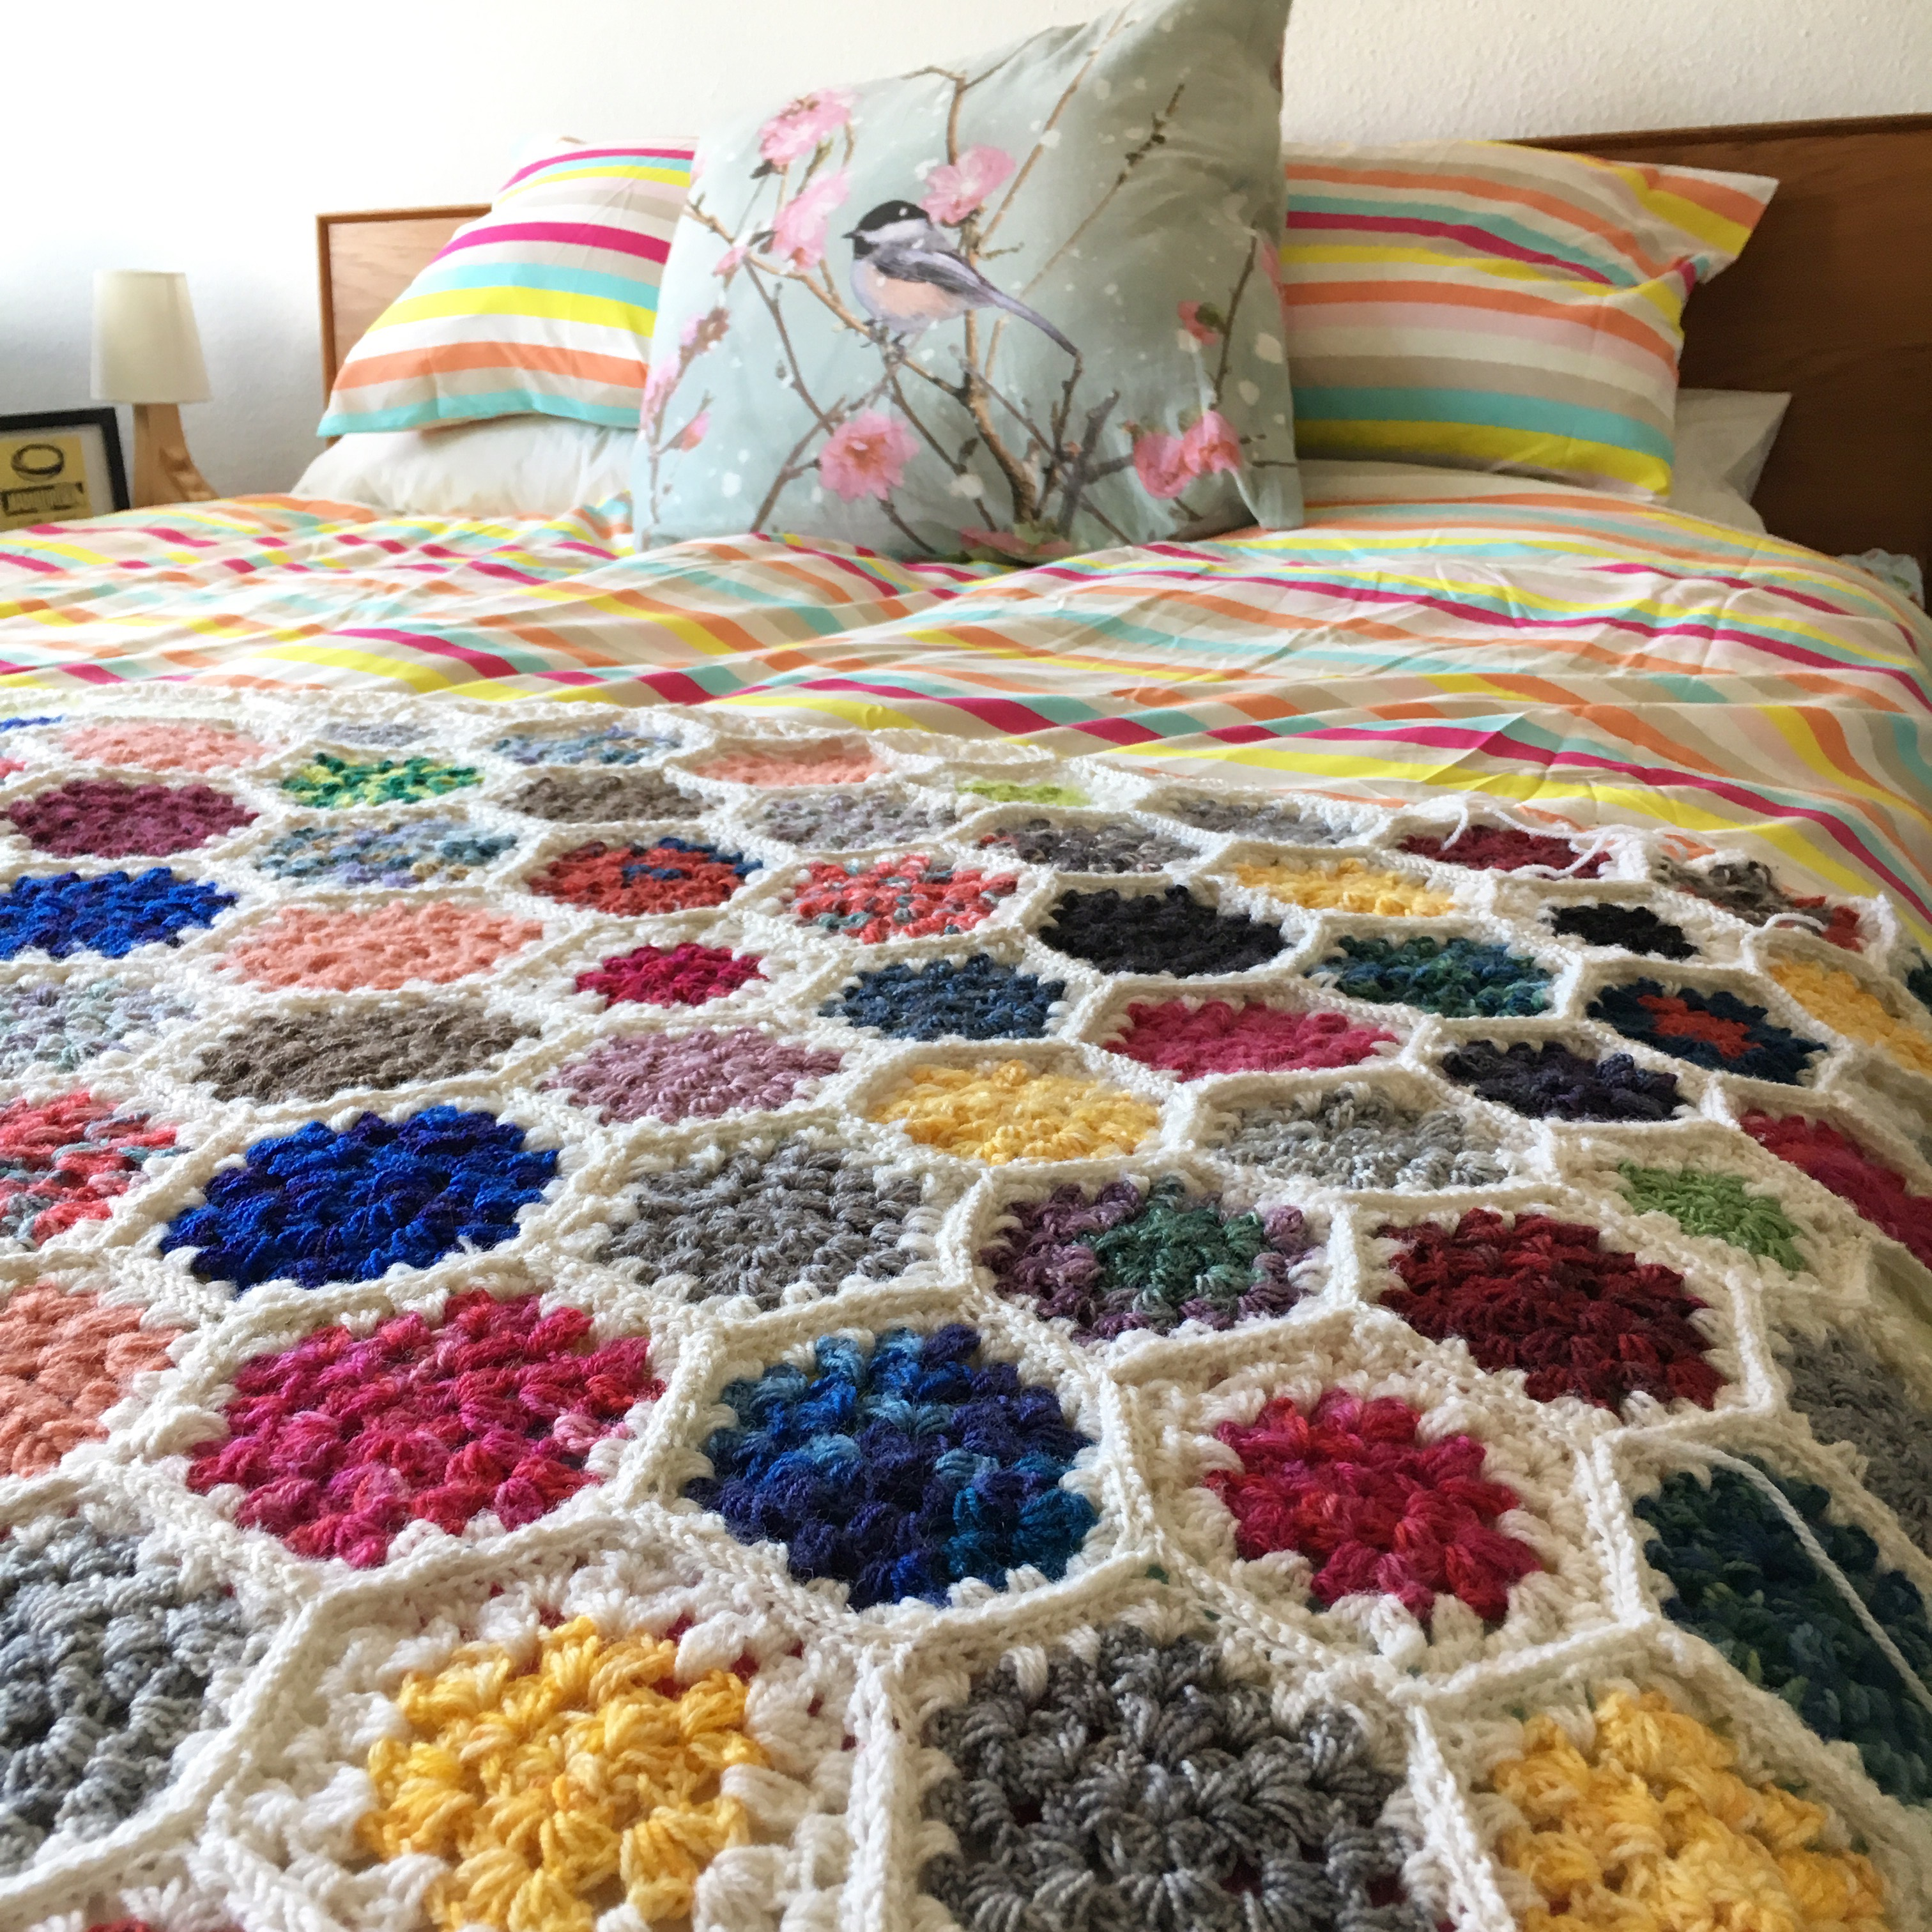 The Big Ugly: My Granny Hexagon Crochet Blanket